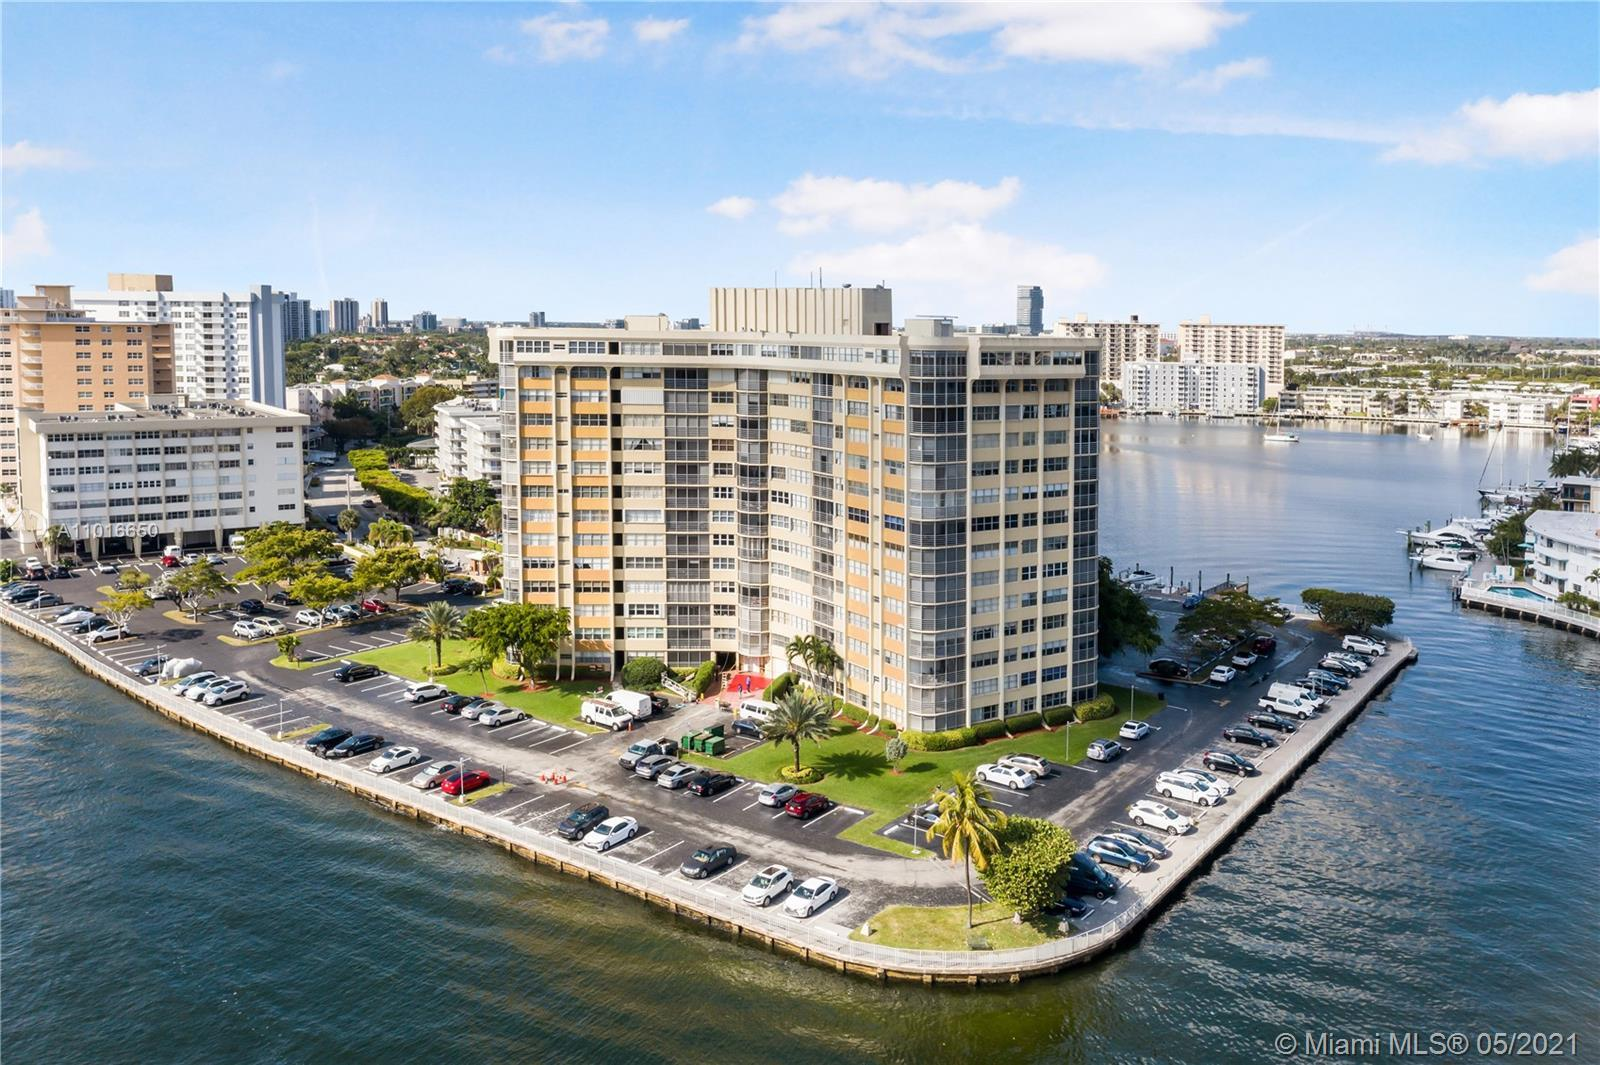 Wake up each morning to Intracoastal views! Stunning 2-bedroom, 2-bath condo in Hallandale Beach. Be